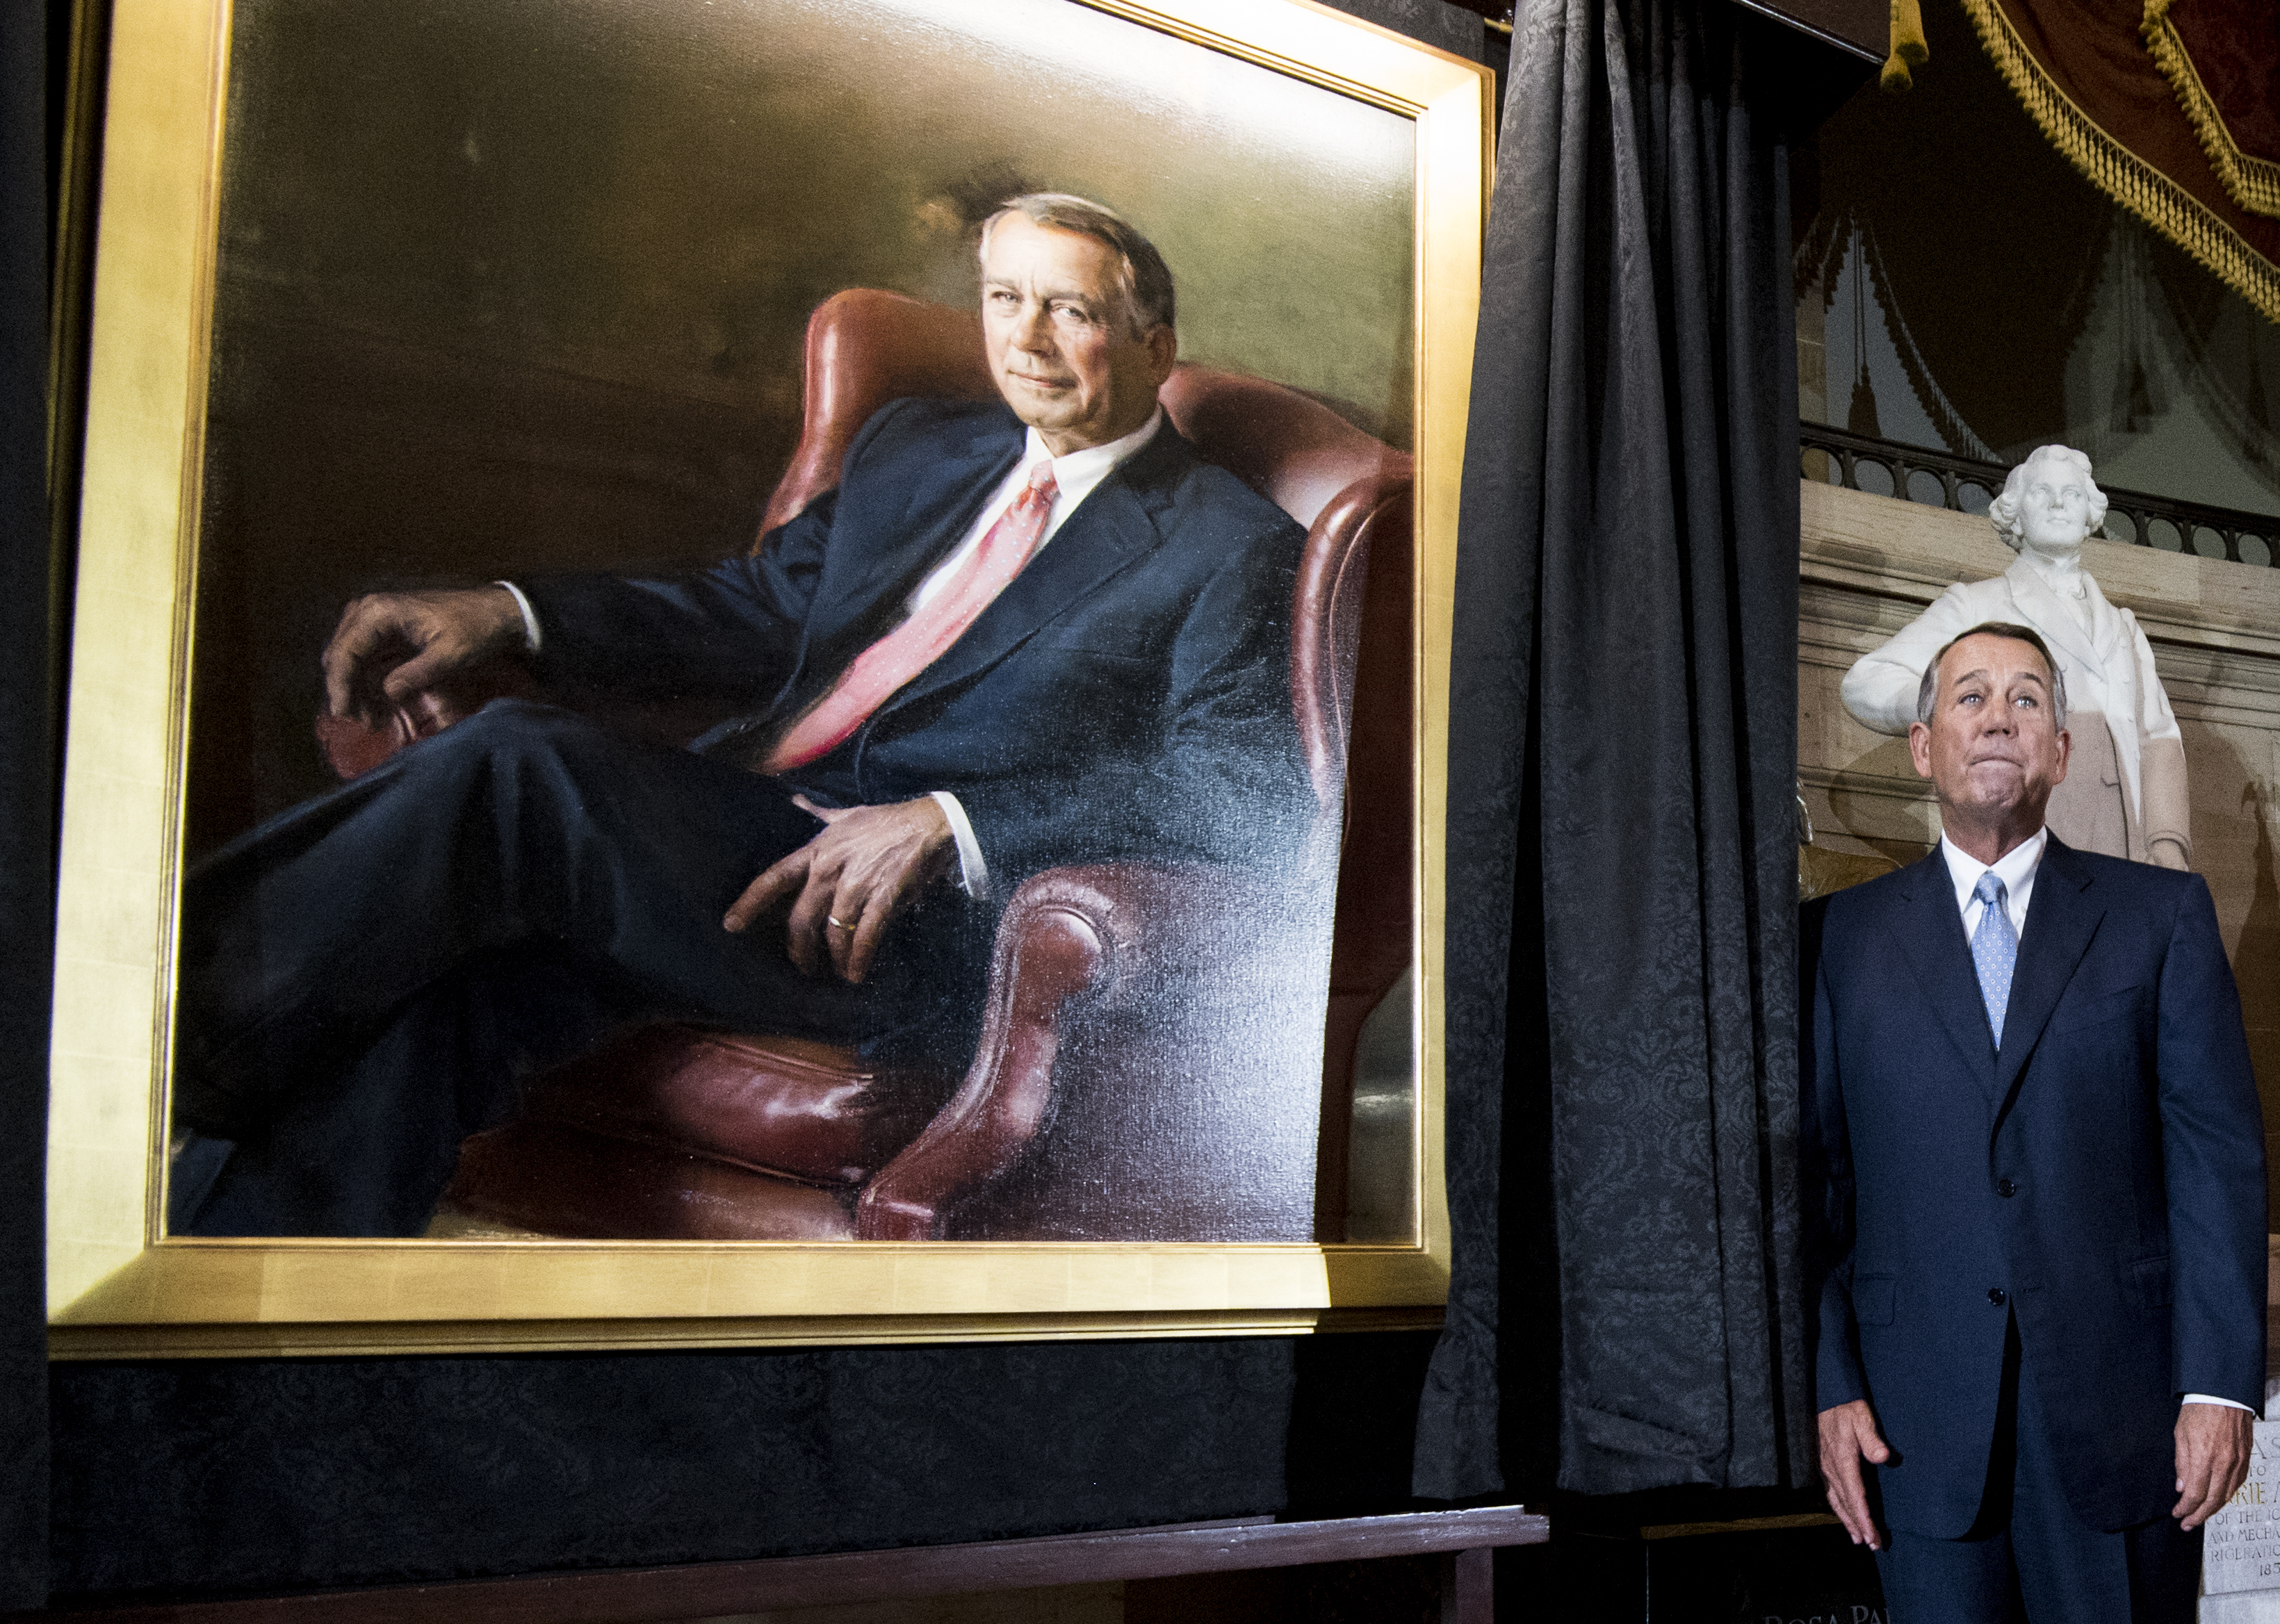 UNITED STATES - NOVEMBER 19: Former Speaker of the House John Boehner, R-Ohio, stands next to his portrait after its unveiling in Statuary Hall in the Capitol on Tuesday, Nov. 19, 2019. (Photo By Bill Clark/CQ Roll Call)